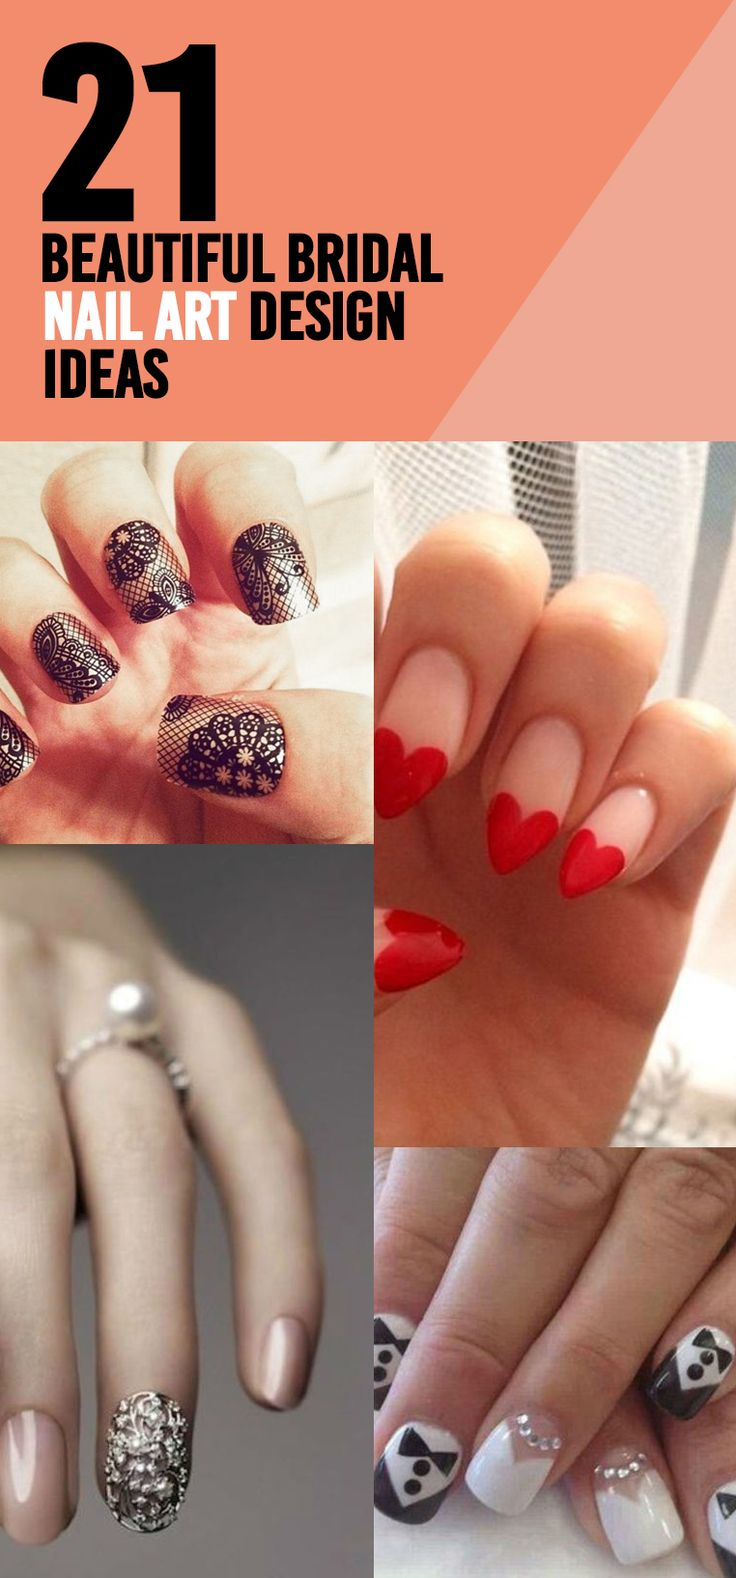 1023 Best Nails Images On Pinterest Nail Scissors Nail Design And